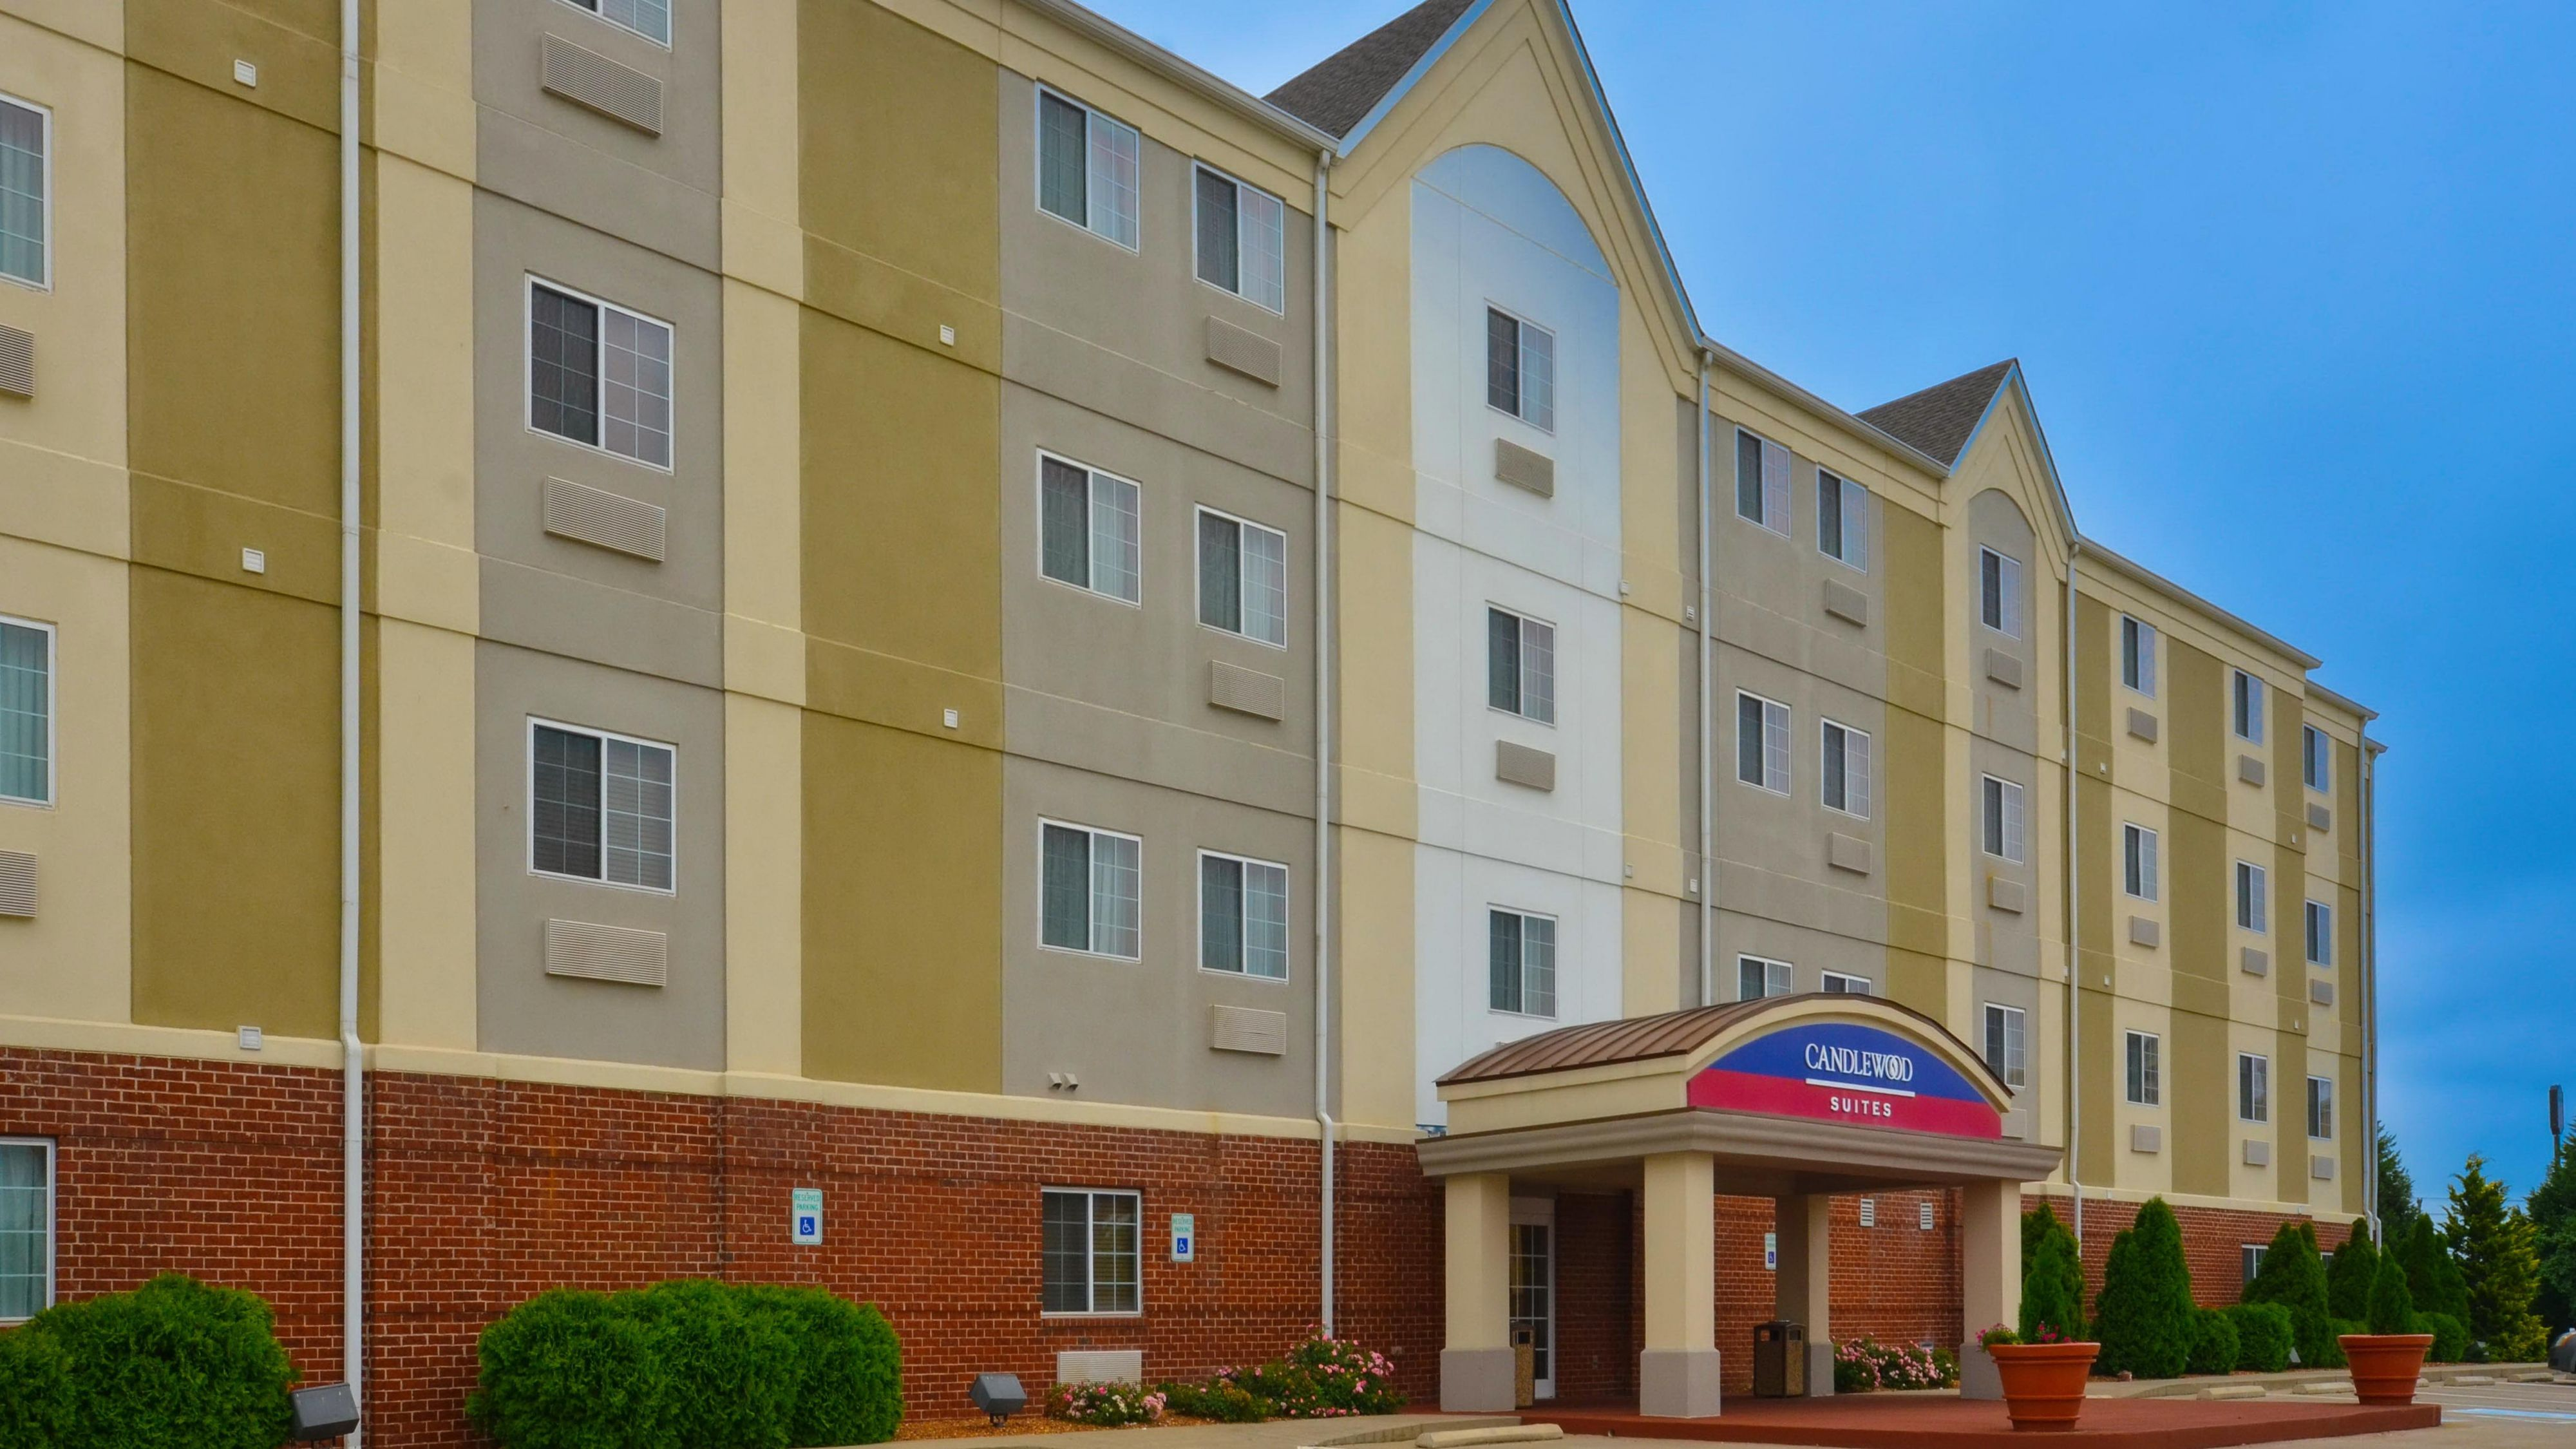 Clarksville Hotels: Candlewood Suites Clarksville - Extended